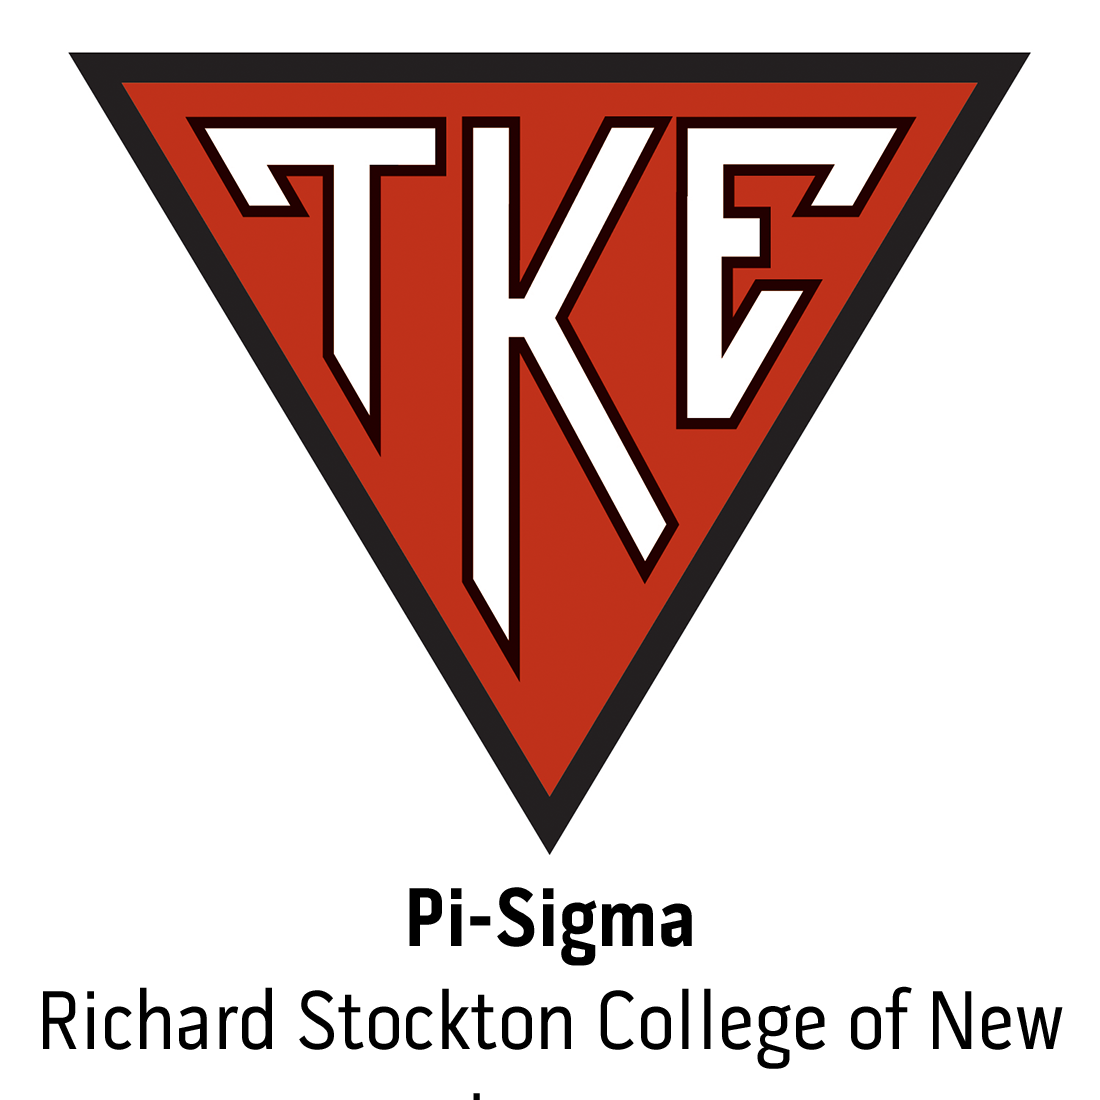 Pi-Sigma Chapter at Richard Stockton College of New Jersey